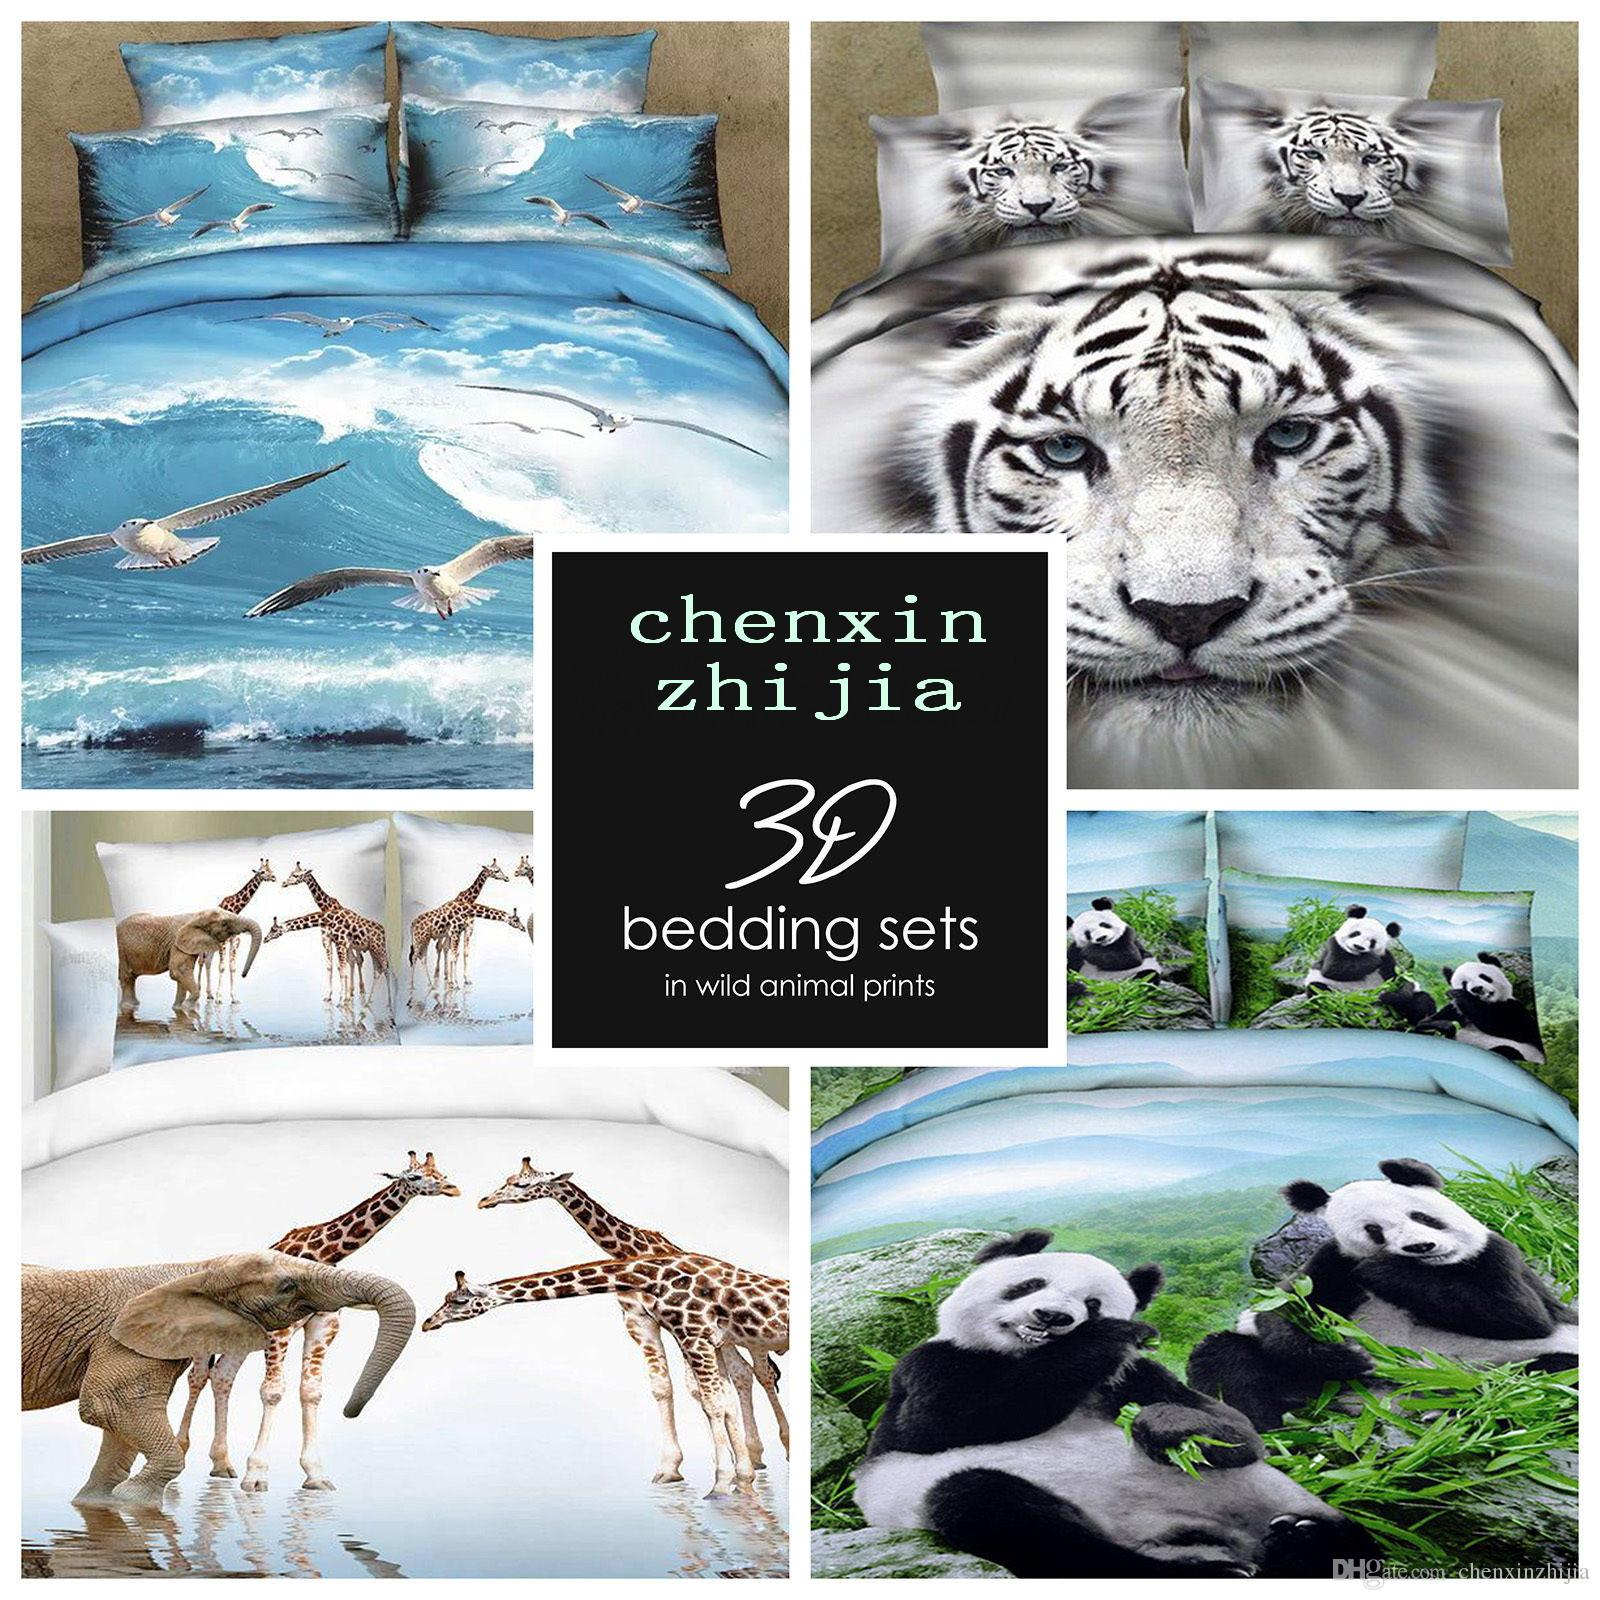 zebra animal print sets bedding bed set bath quilt